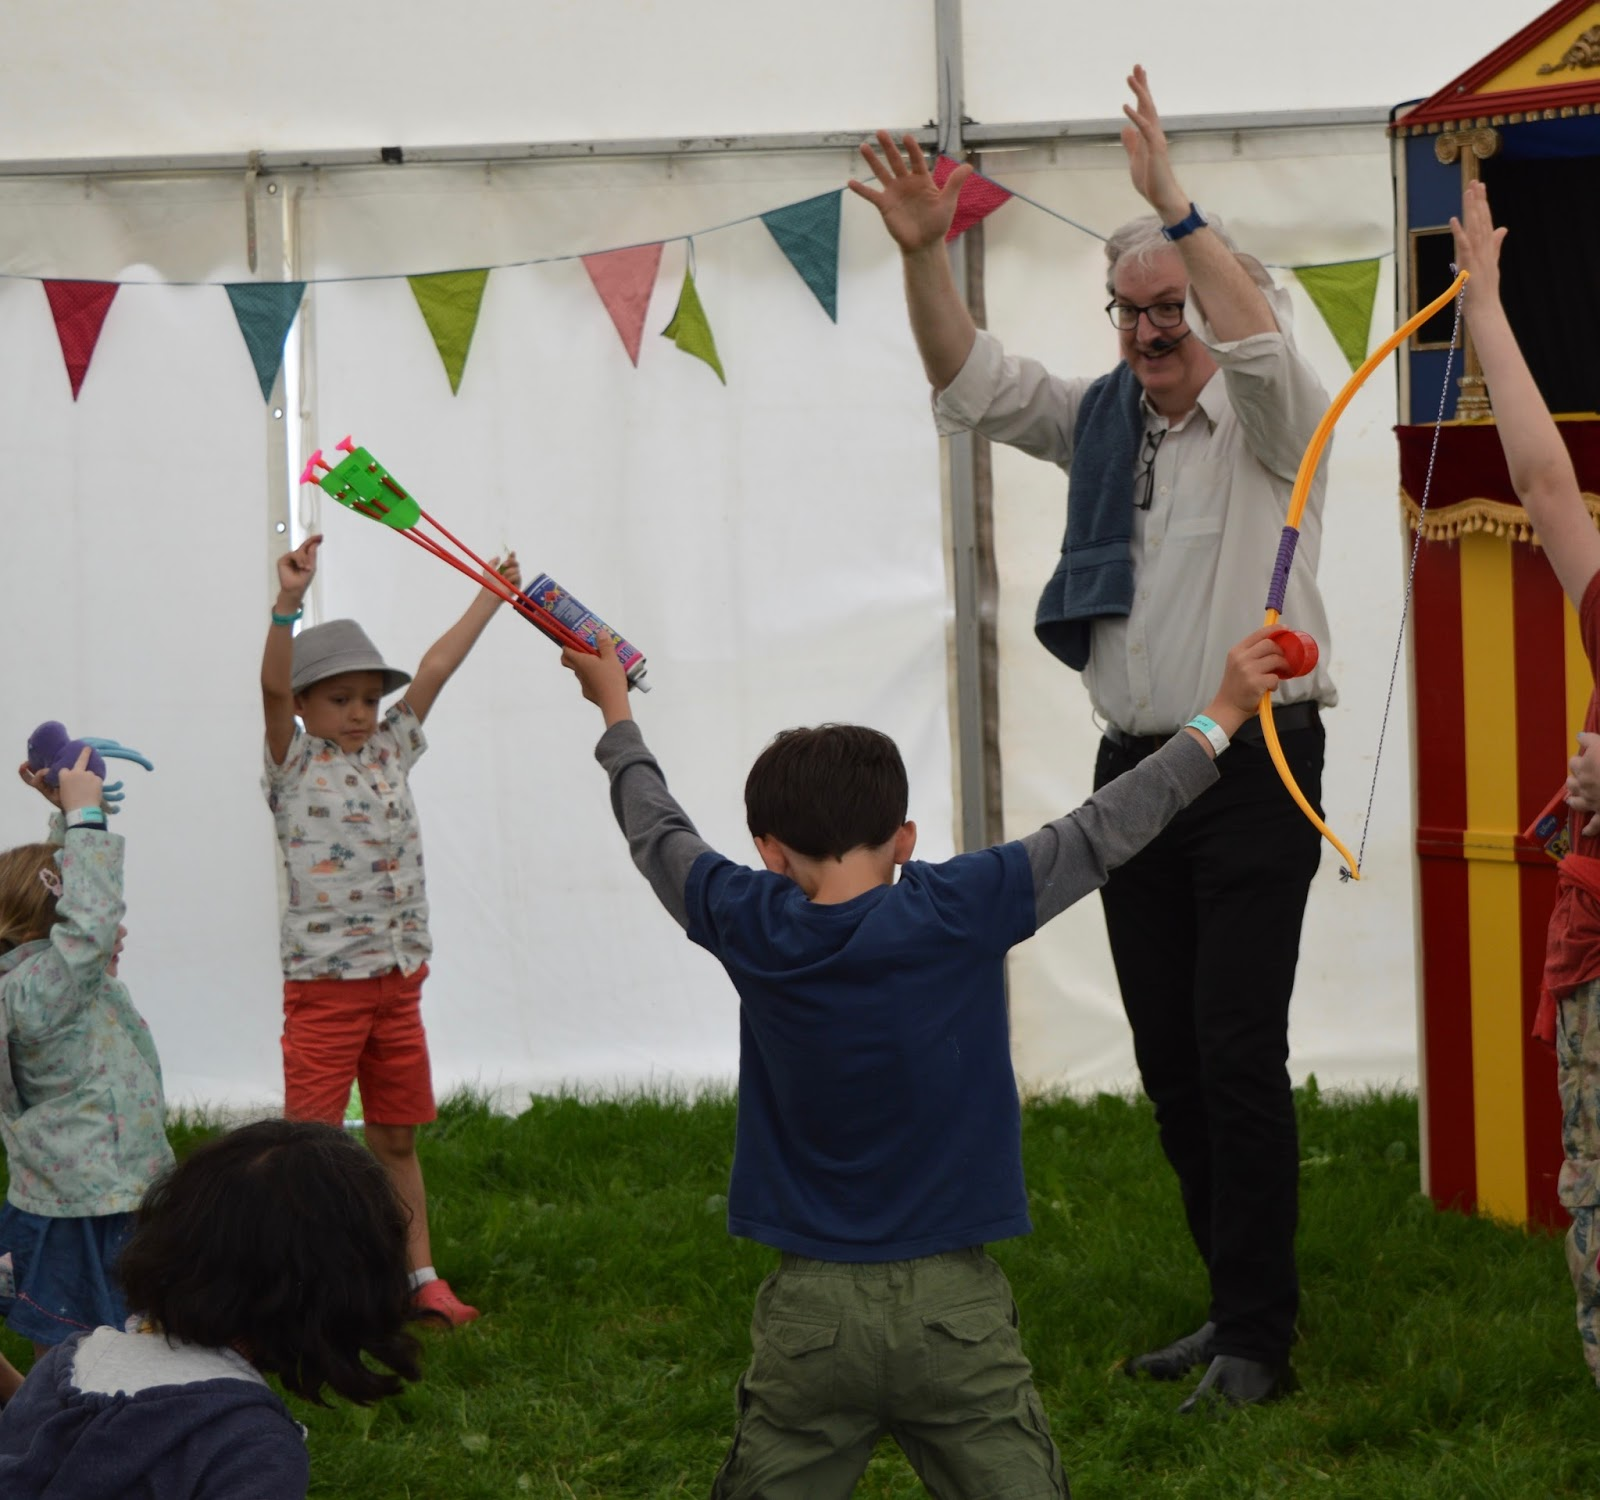 Corbridge Festival 2016 - A Review - Kids tent